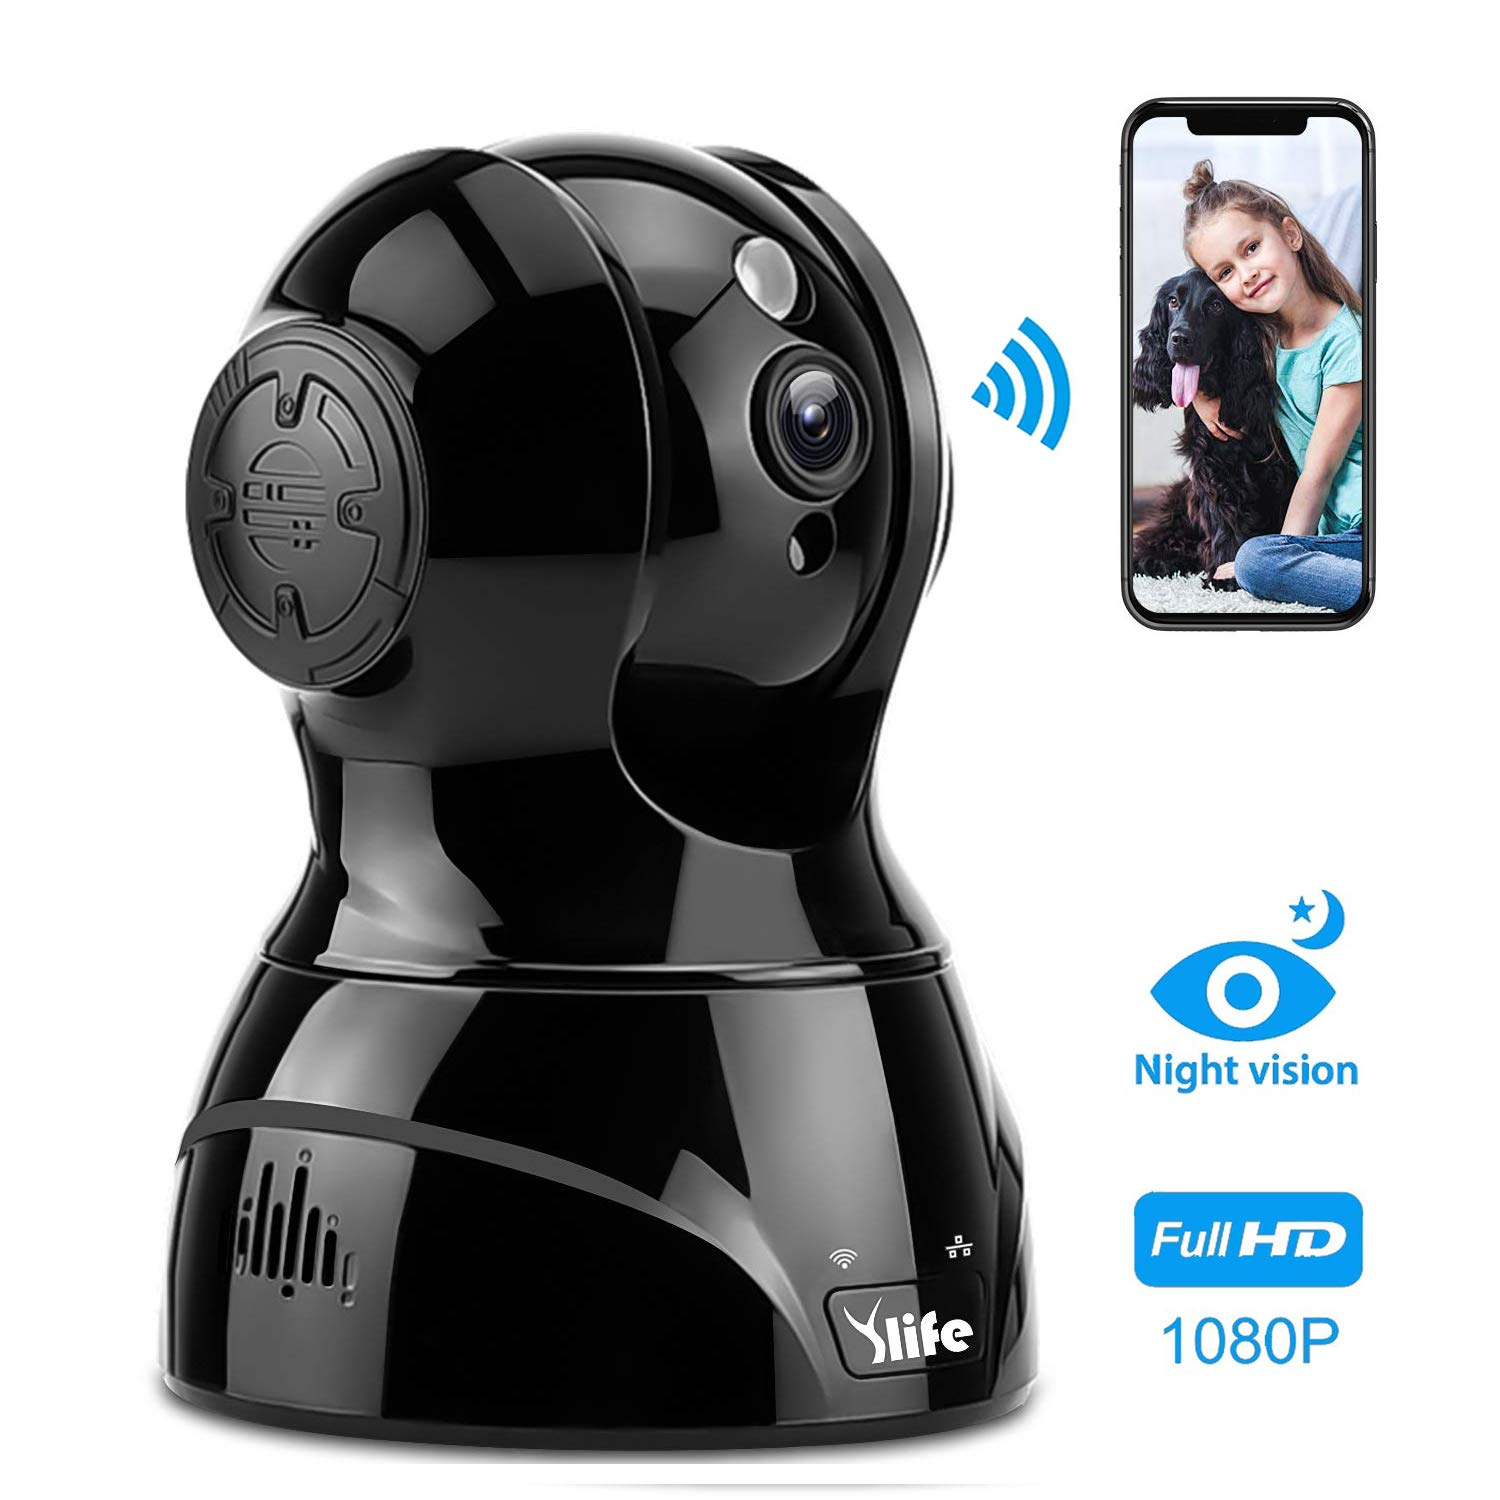 Ylife WiFi Wireless Security Camera, 1080P HD IP Camera Works with Alexa, Pan/Tilt/Zoom Video Baby Pet Monitor Camera with Two Way Audio, Night Vision, Motion Detection, Indoor Home Dome Surveillance by Ylife